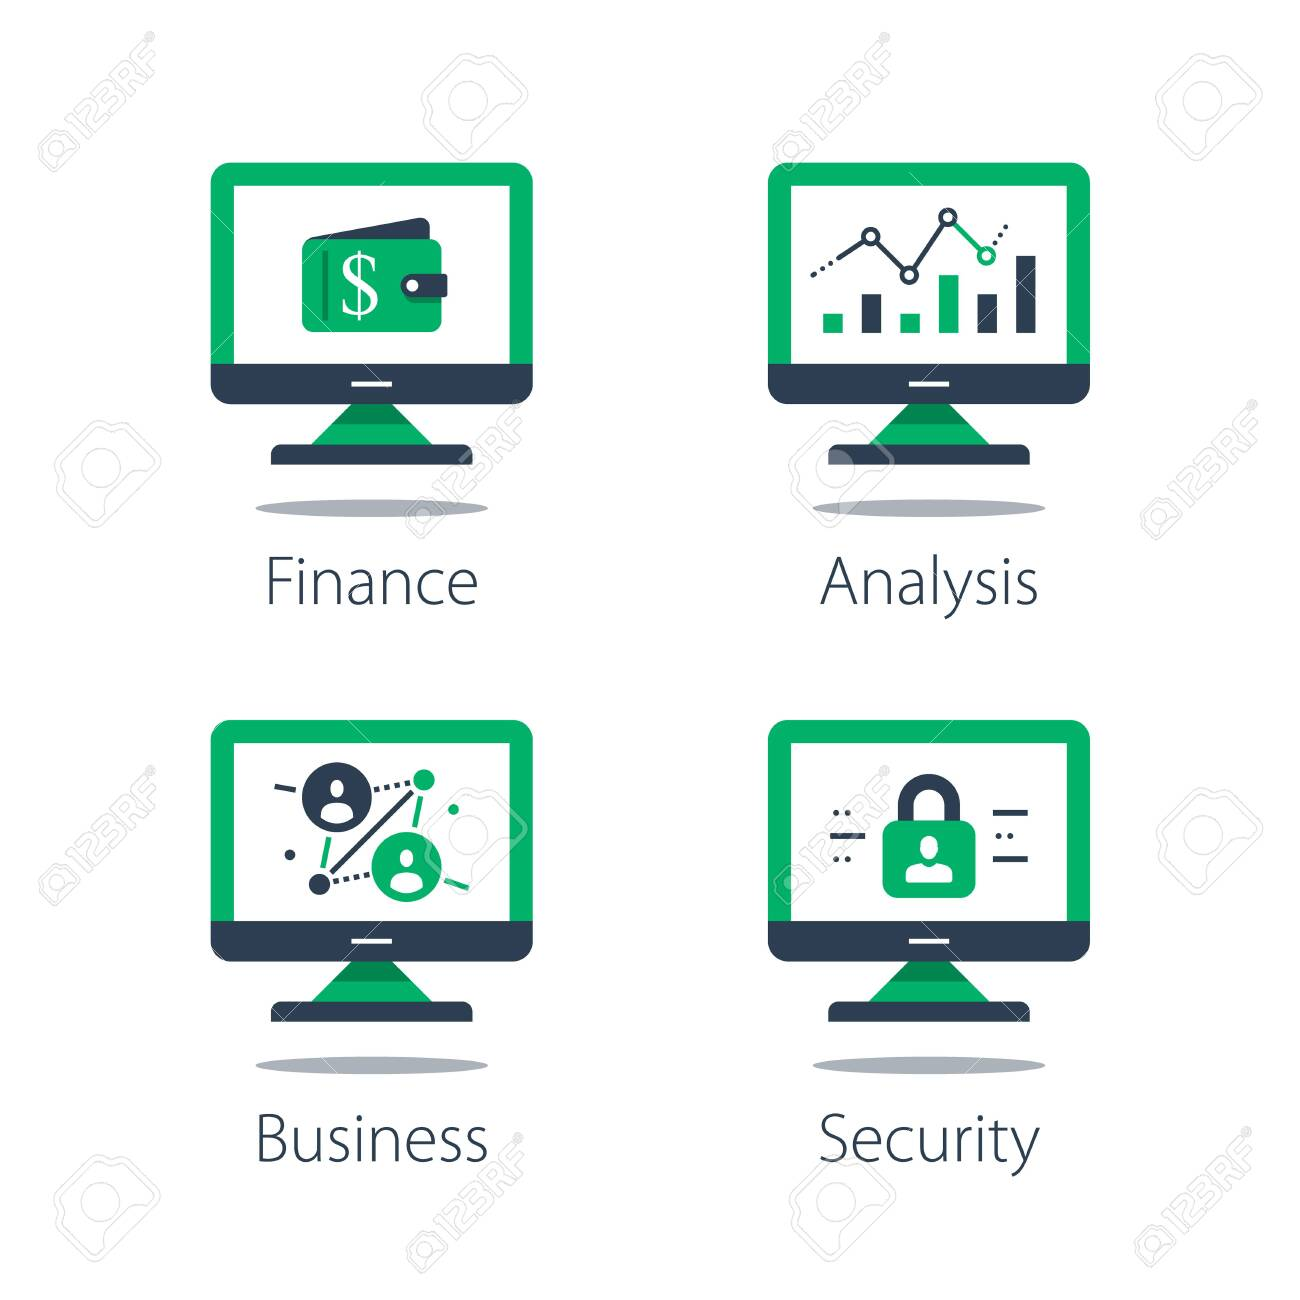 Online finance, internet banking, web security, computer monitor and padlock and financial security system concept illustration. - 150814047